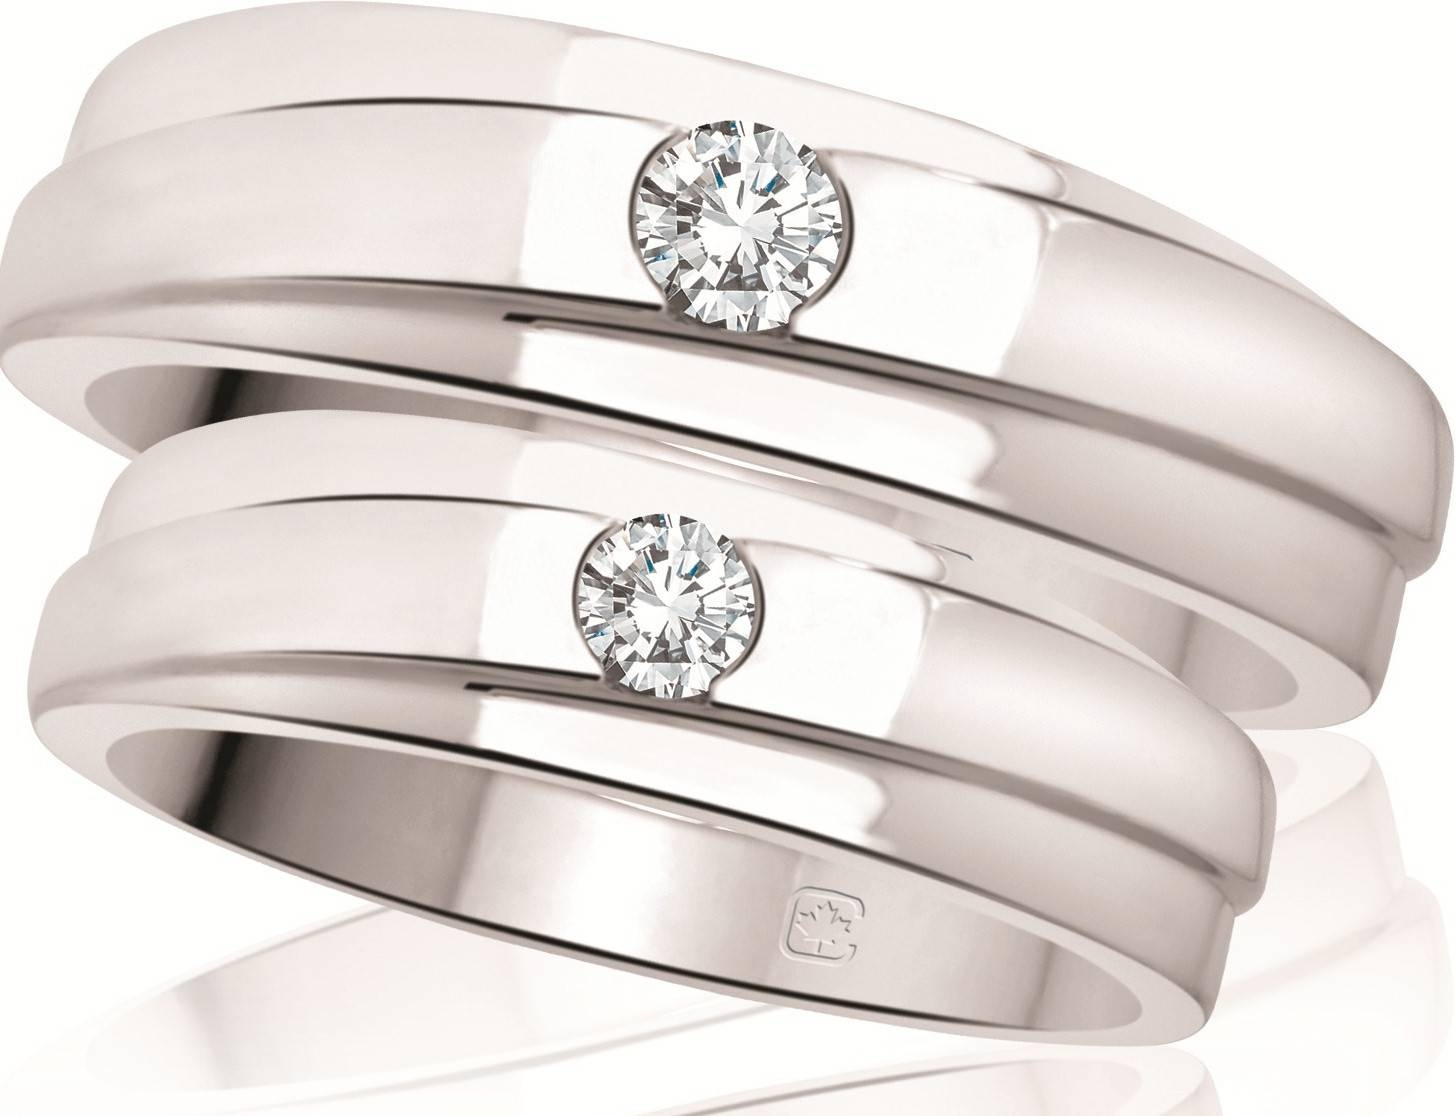 Product Detail Throughout Matching Engagement Rings For Him And Her (View 13 of 15)